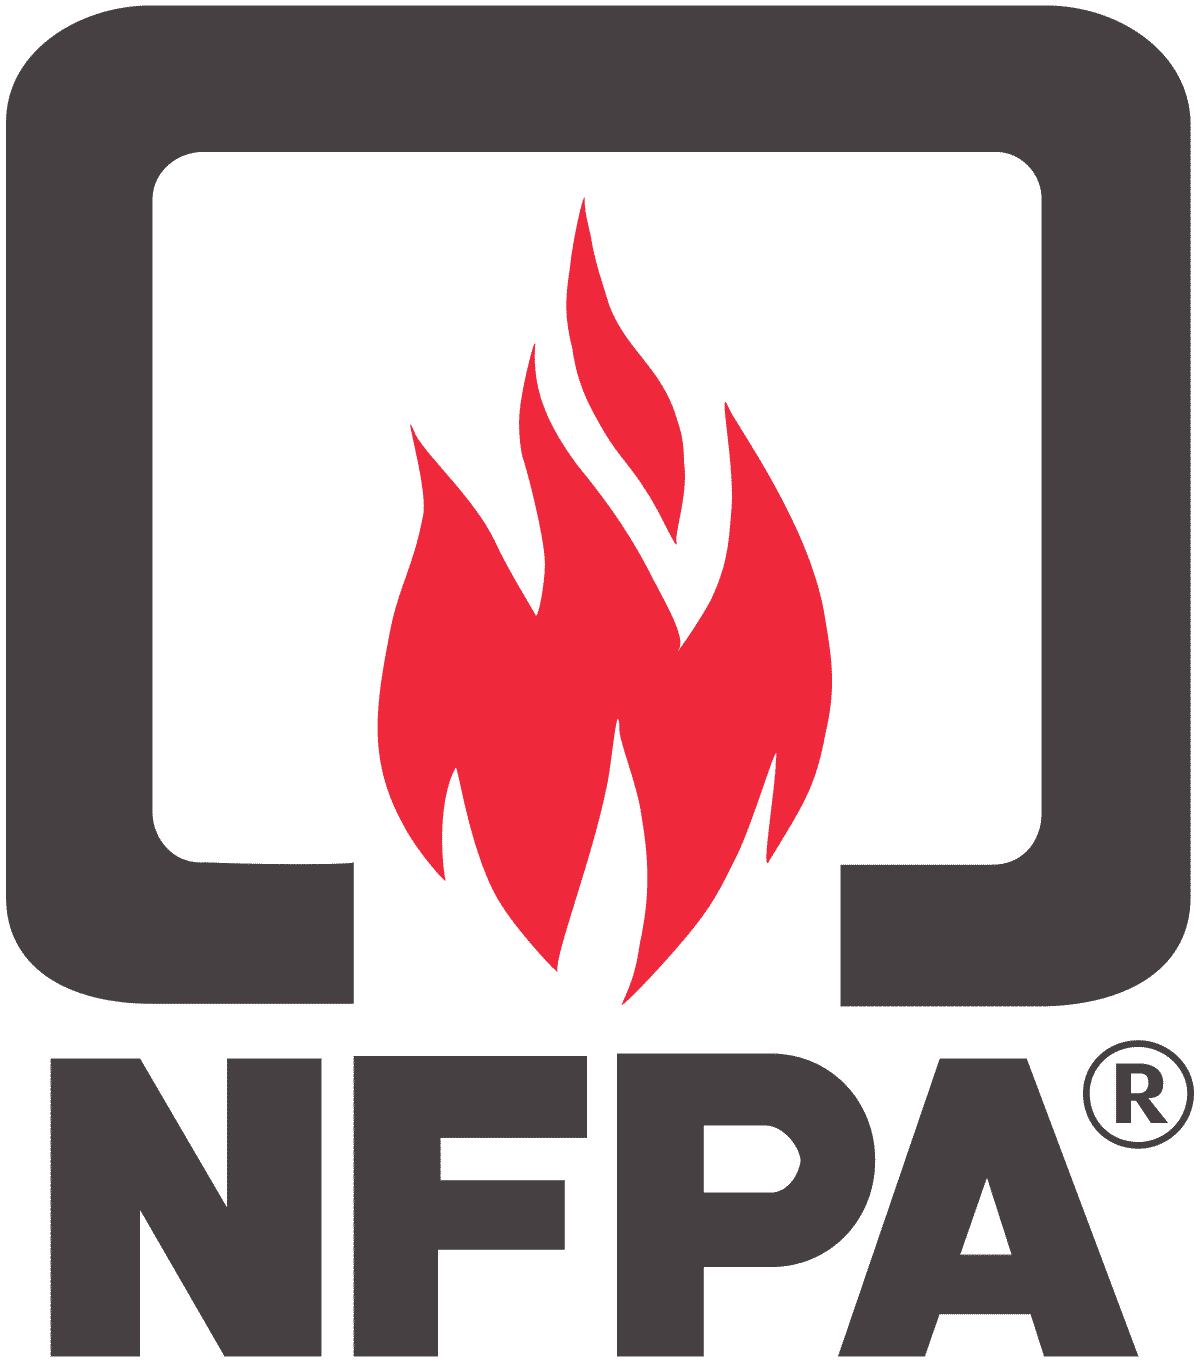 NFPA Logo - Inter Connection Electric